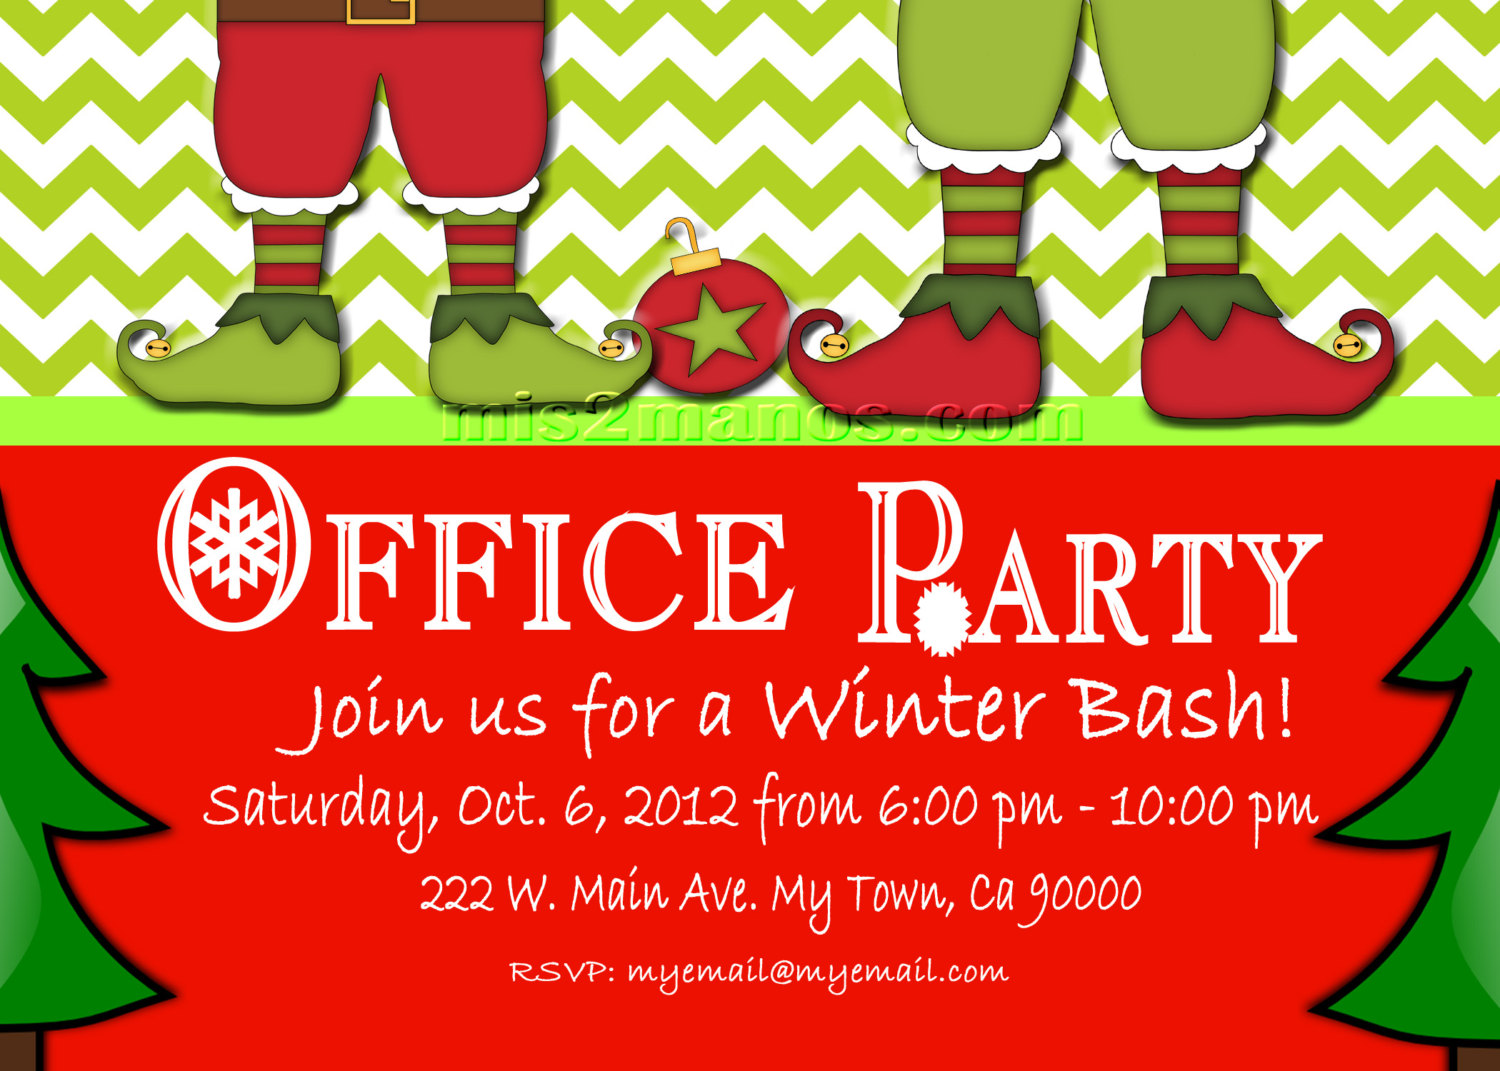 office party invitation com office holiday bowling party invitation corporate design needs